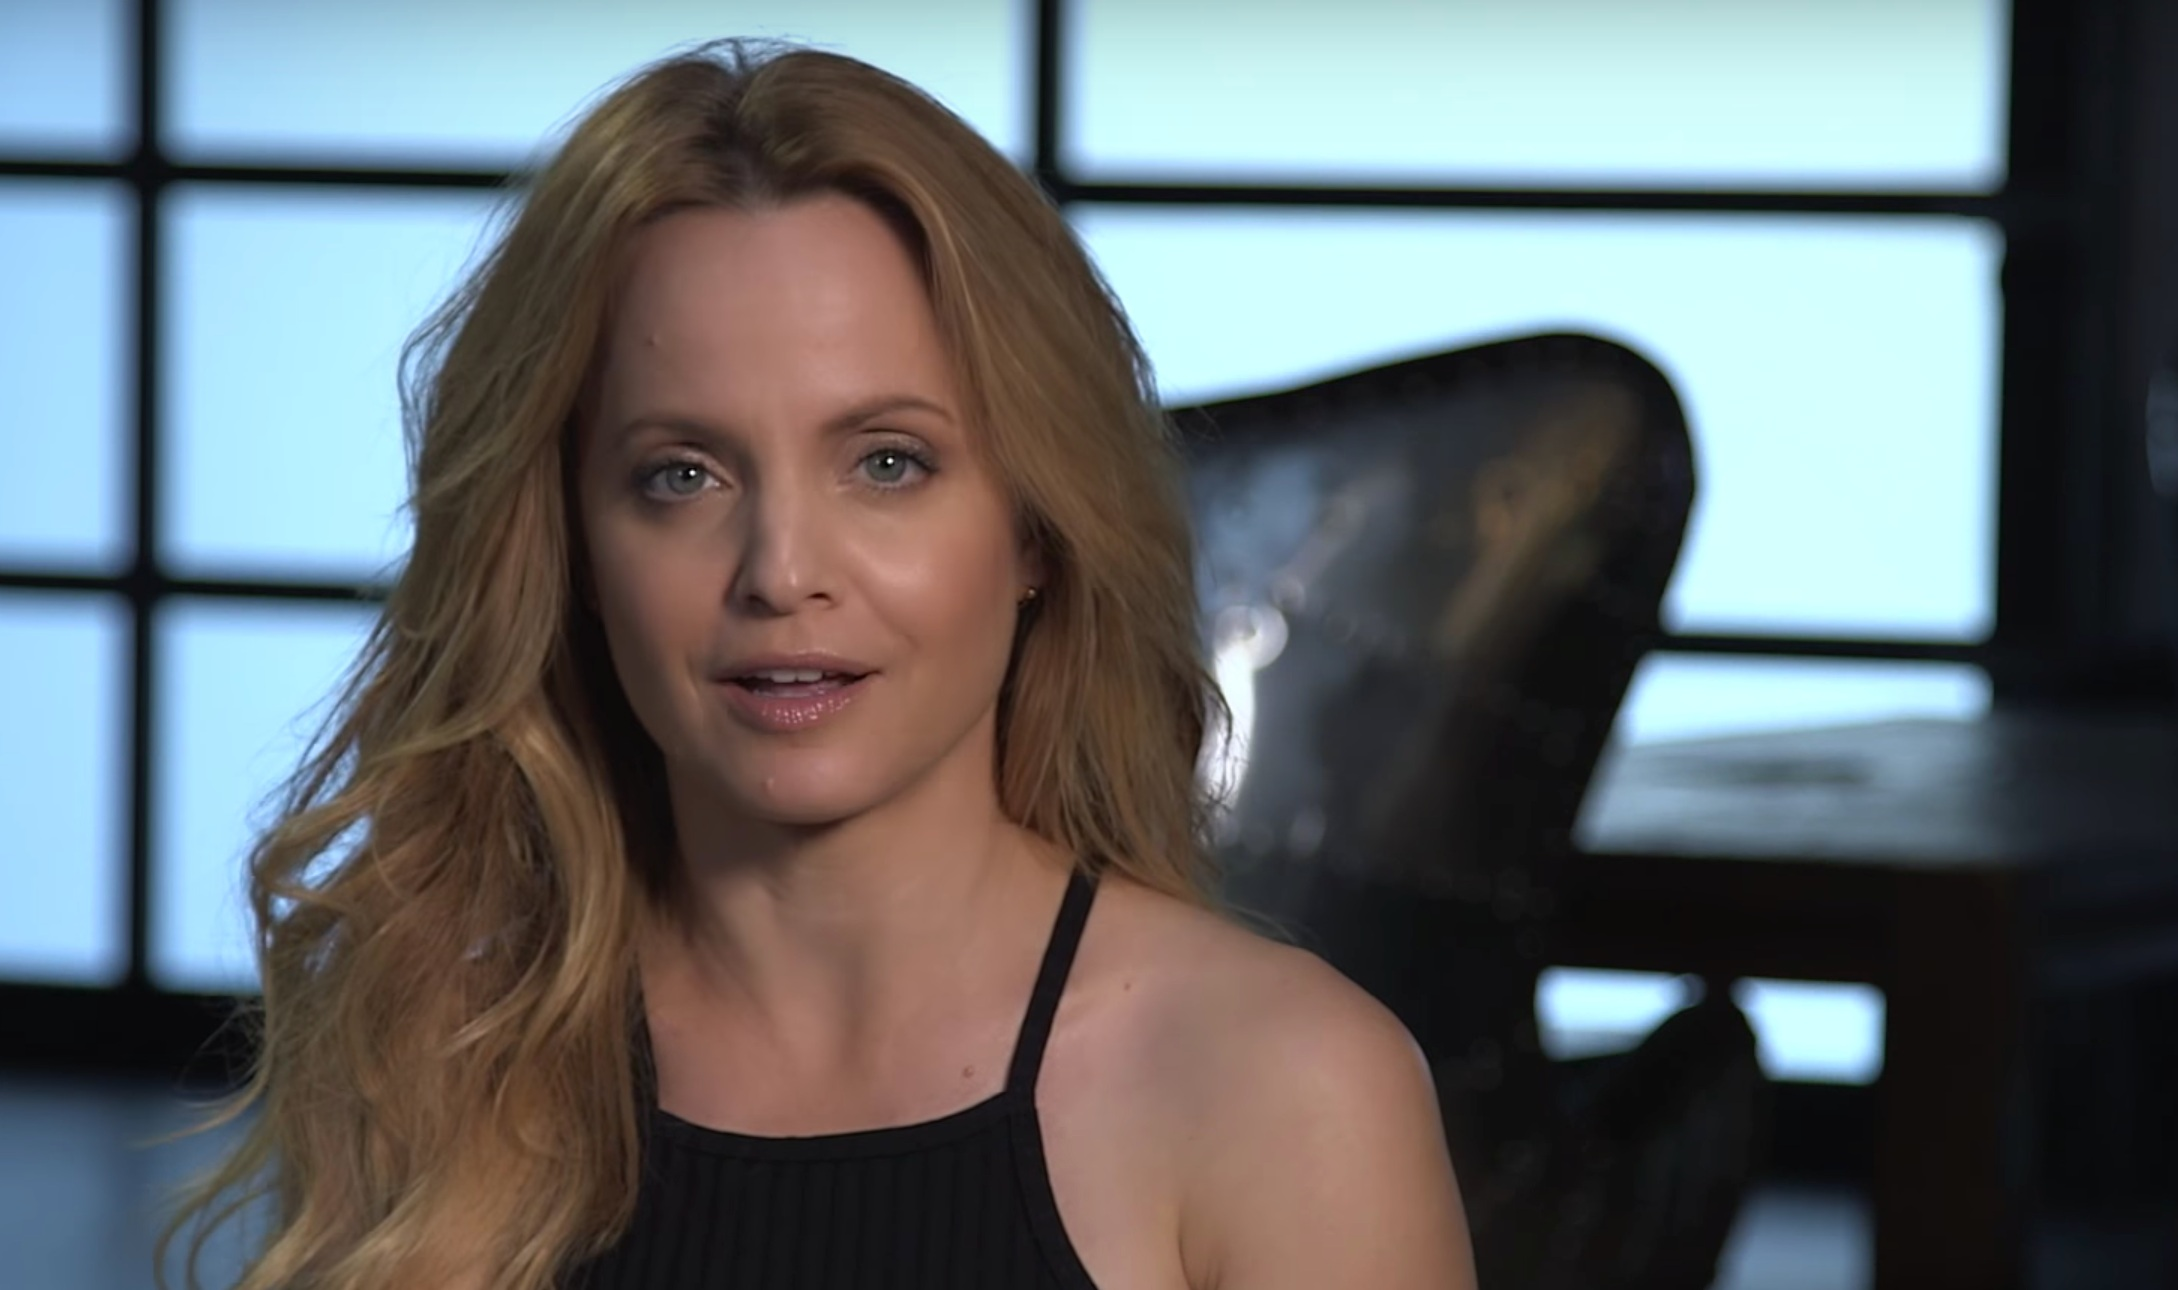 Mena Suvari nudes (71 photos), Topless, Leaked, Instagram, see through 2020